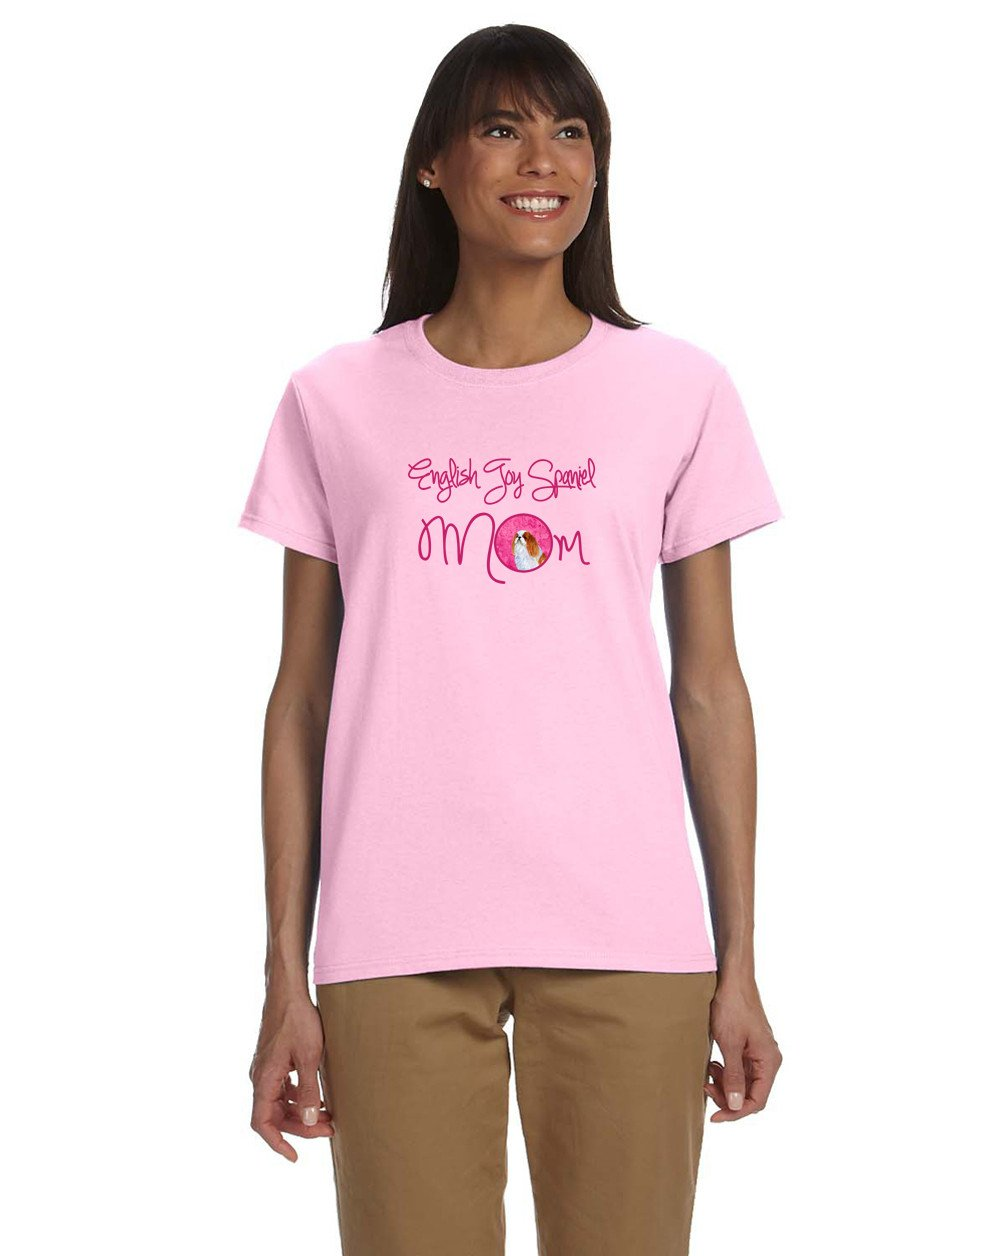 Buy this Pink English Toy Spaniel Mom T-shirt Ladies Cut Short Sleeve Large